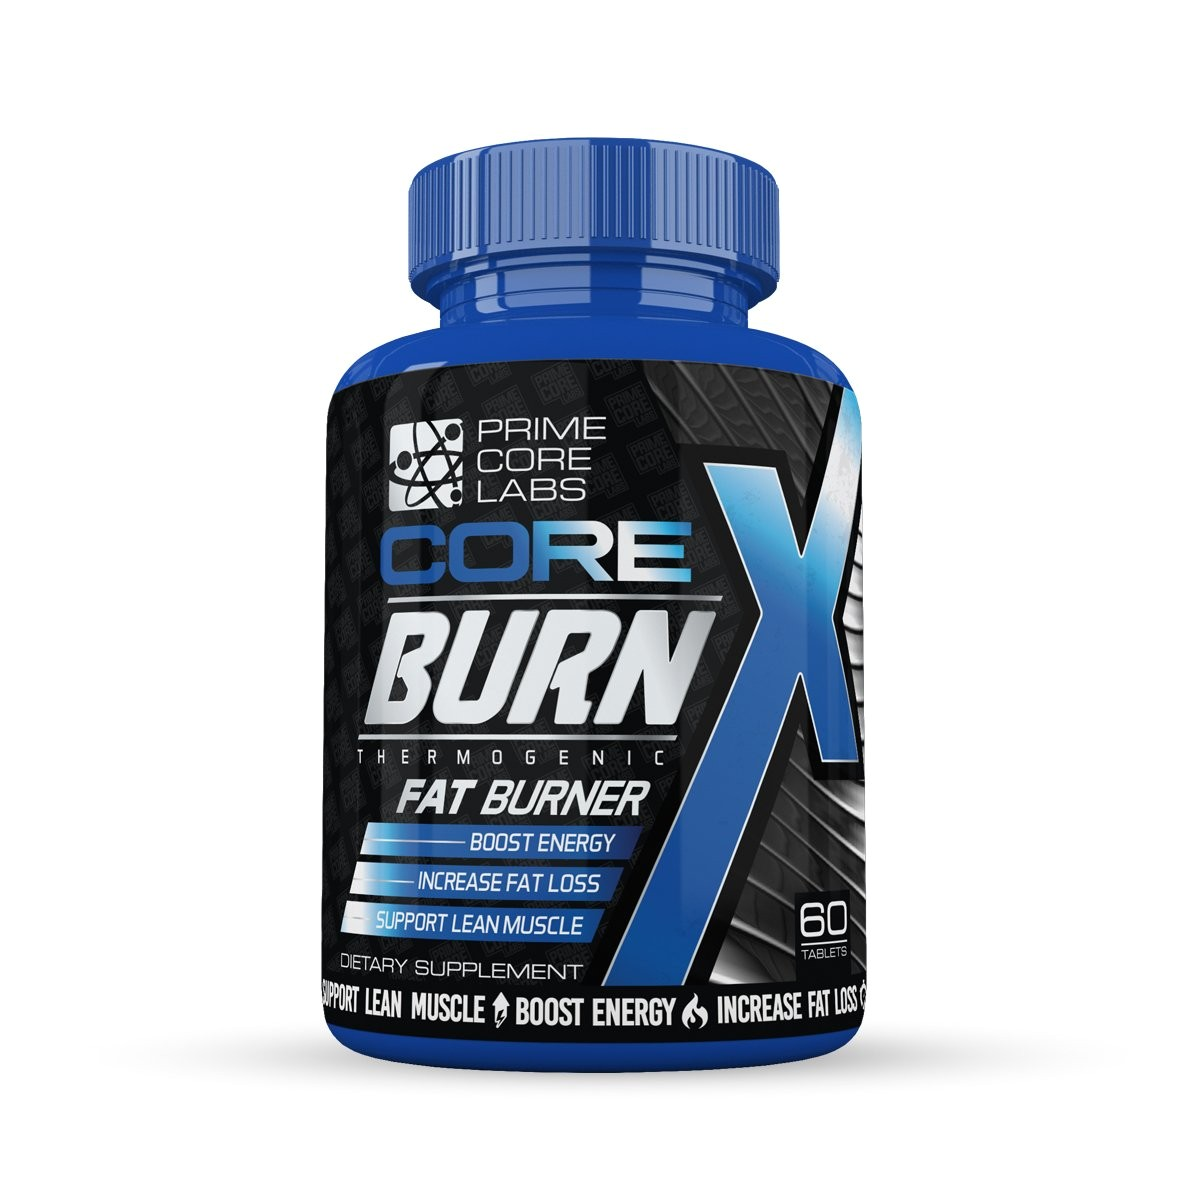 amazon com thermogenic fat burner weight loss pills energy boost energy enhancing thermogenic fat burner by core burn x decrease appetite